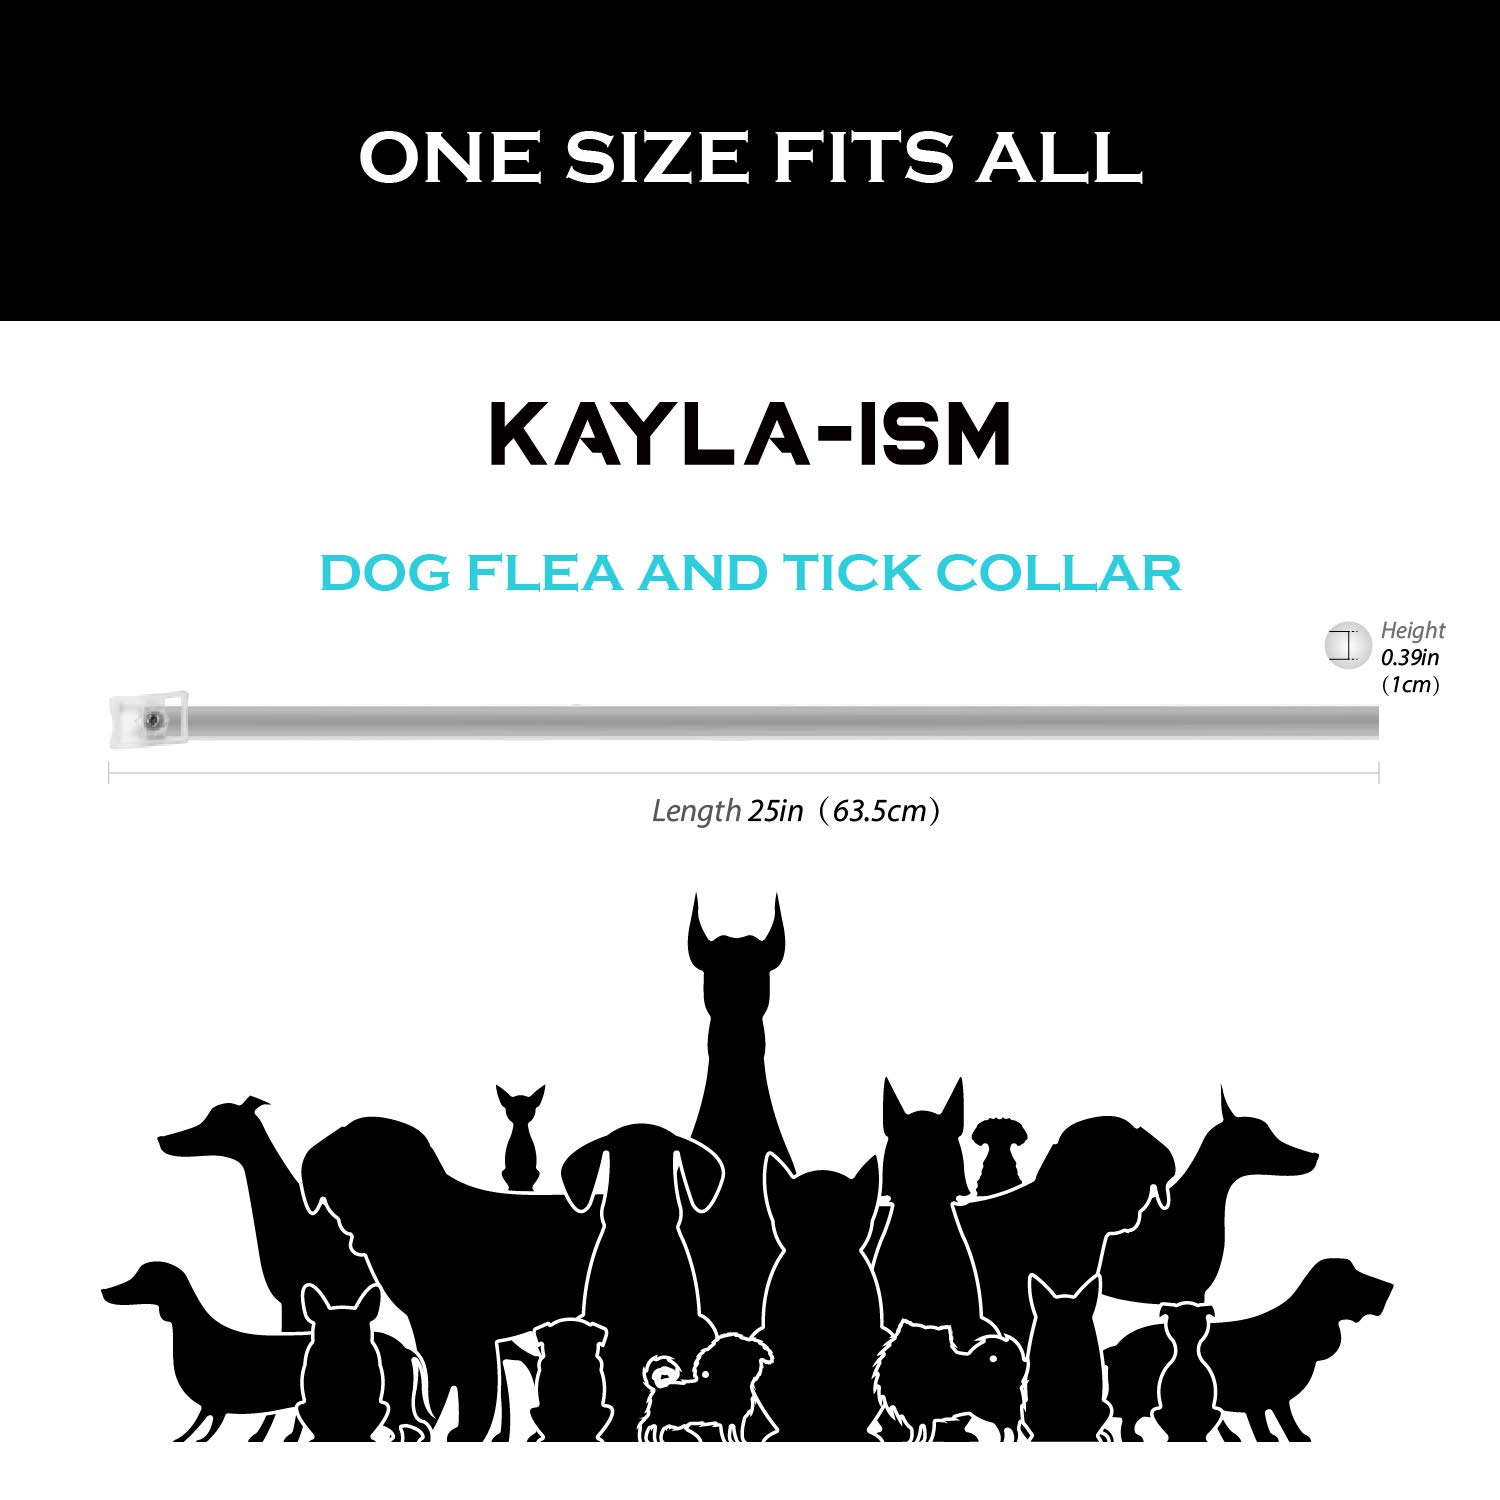 Kayla-ism Dog Flea and Tick Collar, Natural and Essential Oils, Waterproof, One Size Fits All, 8 Months Full Protection, Healthy and Harmless by Kayla-ism (Image #4)